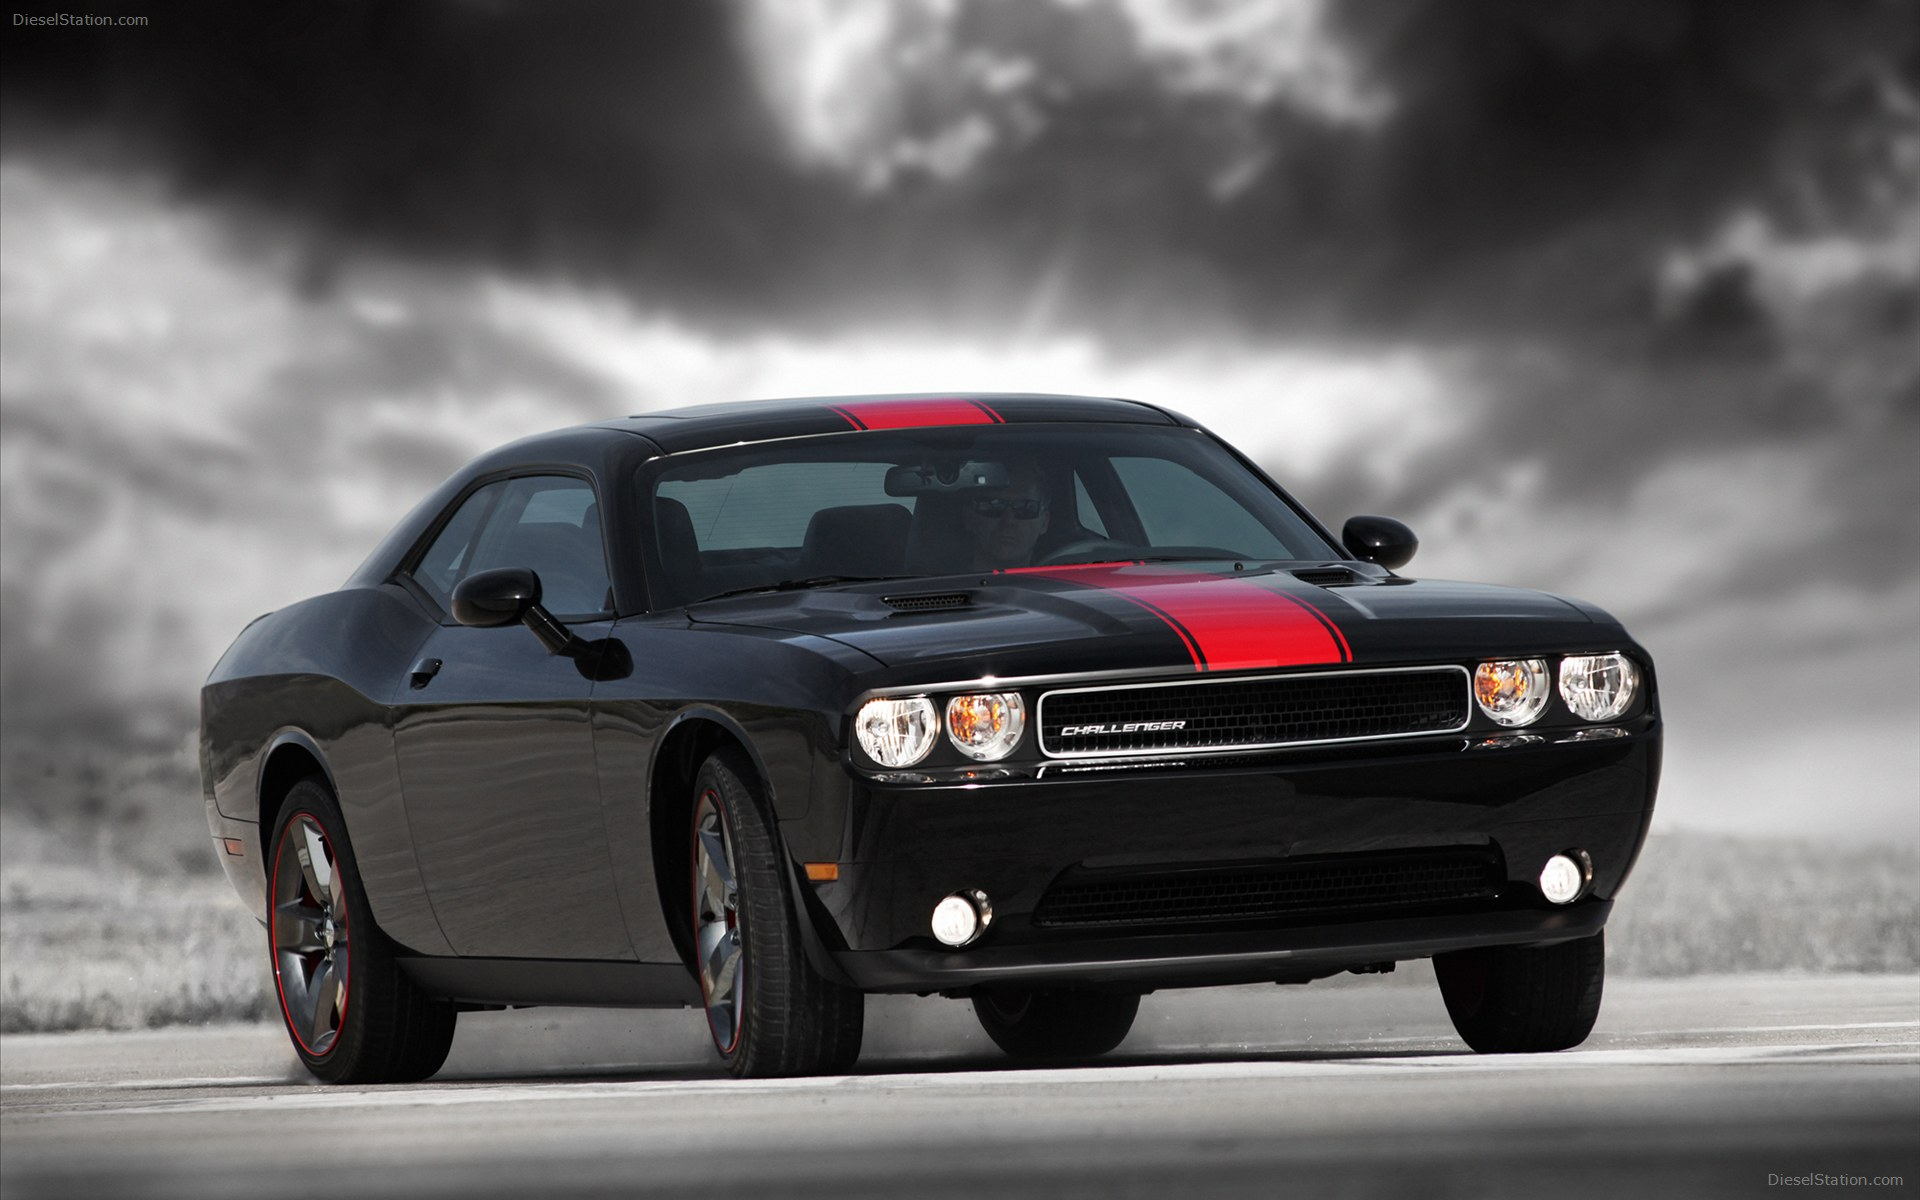 1920x1200 - Dodge Challenger Rallye Wallpapers 7